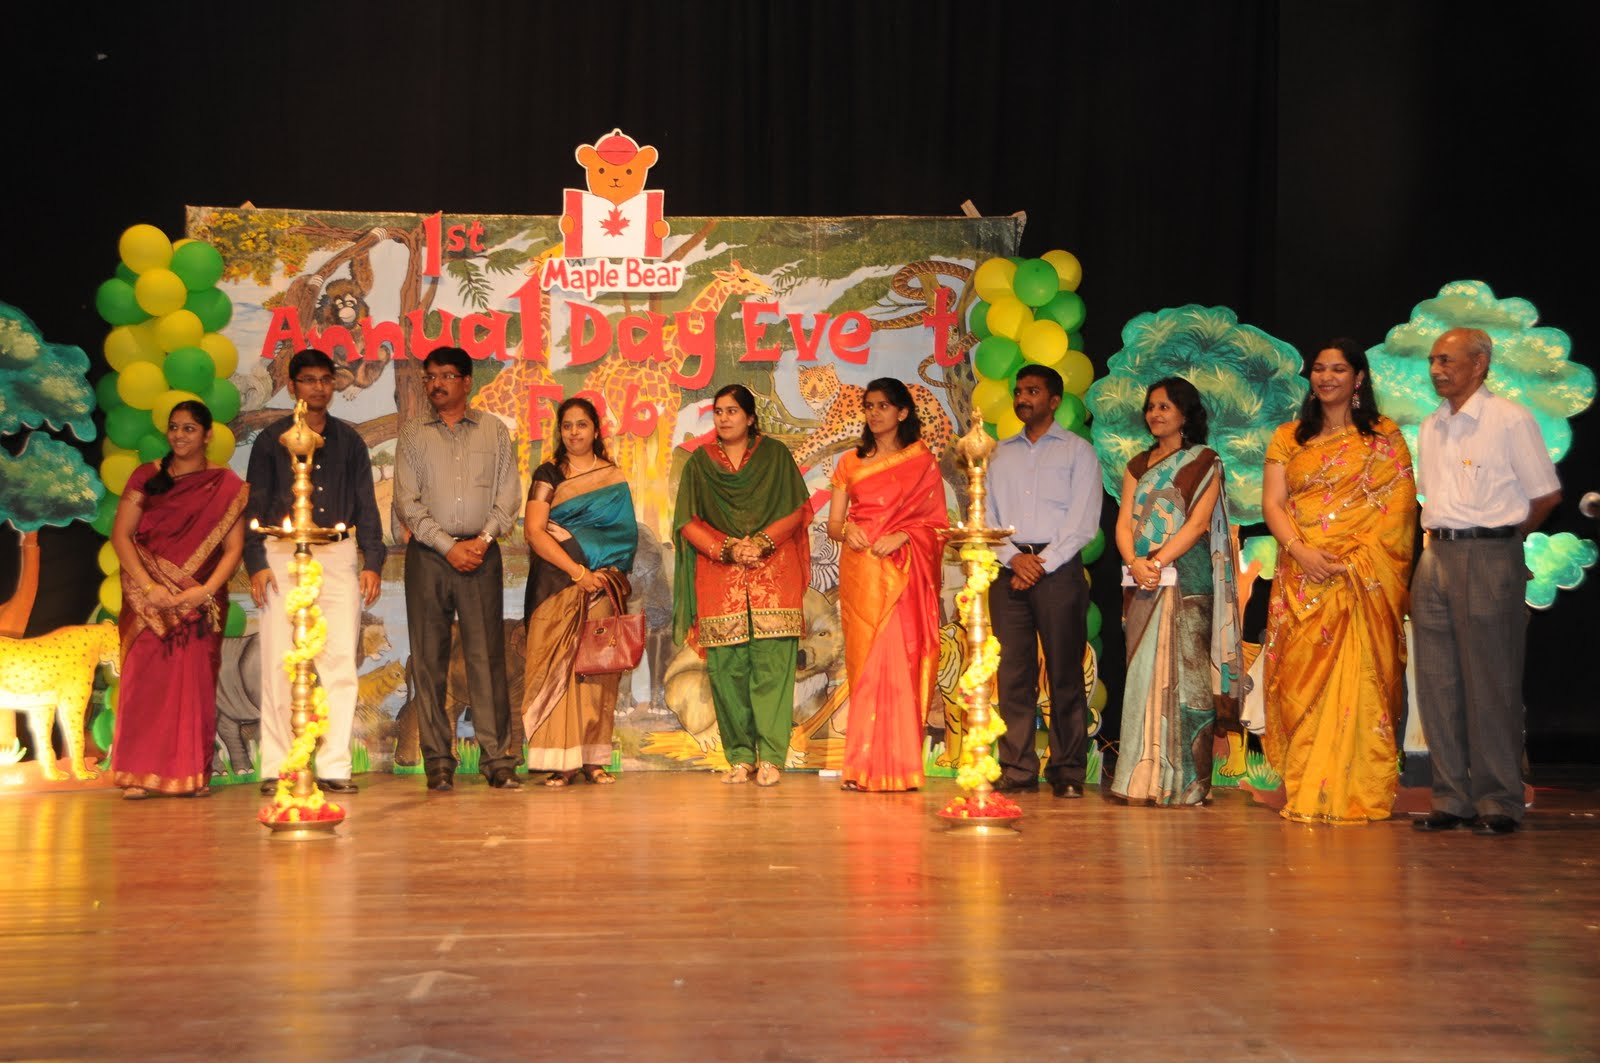 speech on stage conduction on annual function Oxford grammar school celebrated its 29th annual sports and games inaugural function on 1st nov, 2009 the dignitaries were presented smtcsramalaxmi, ifs, addl pccf (environment cell).